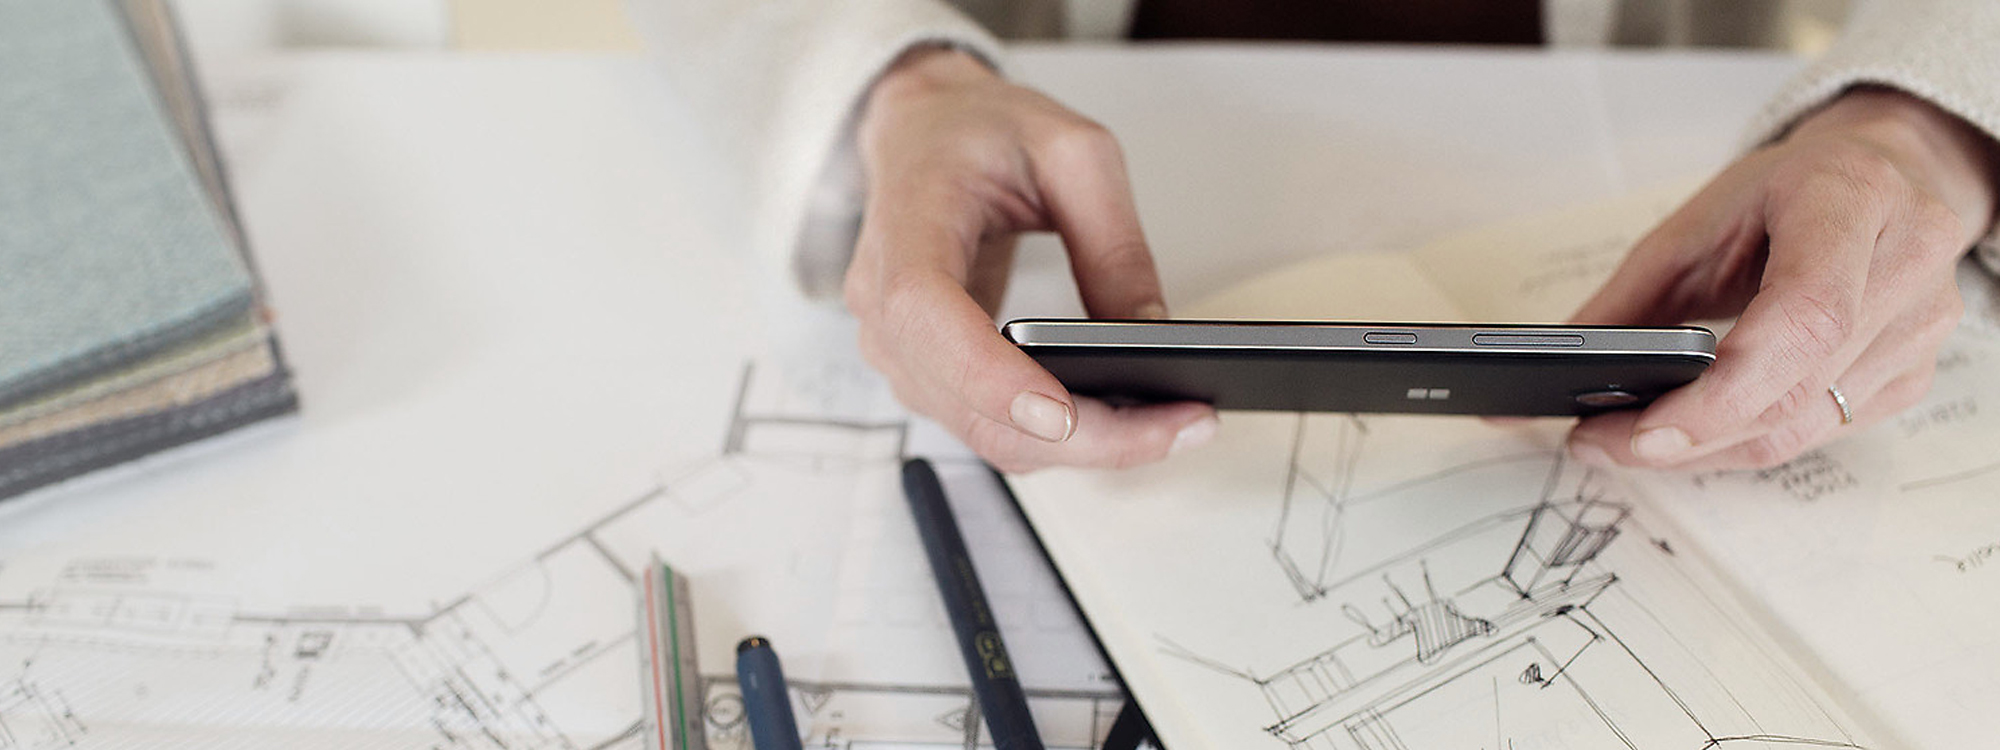 Woman's hands holding Lumia 650 over blueprints and a sketchbook on a desk